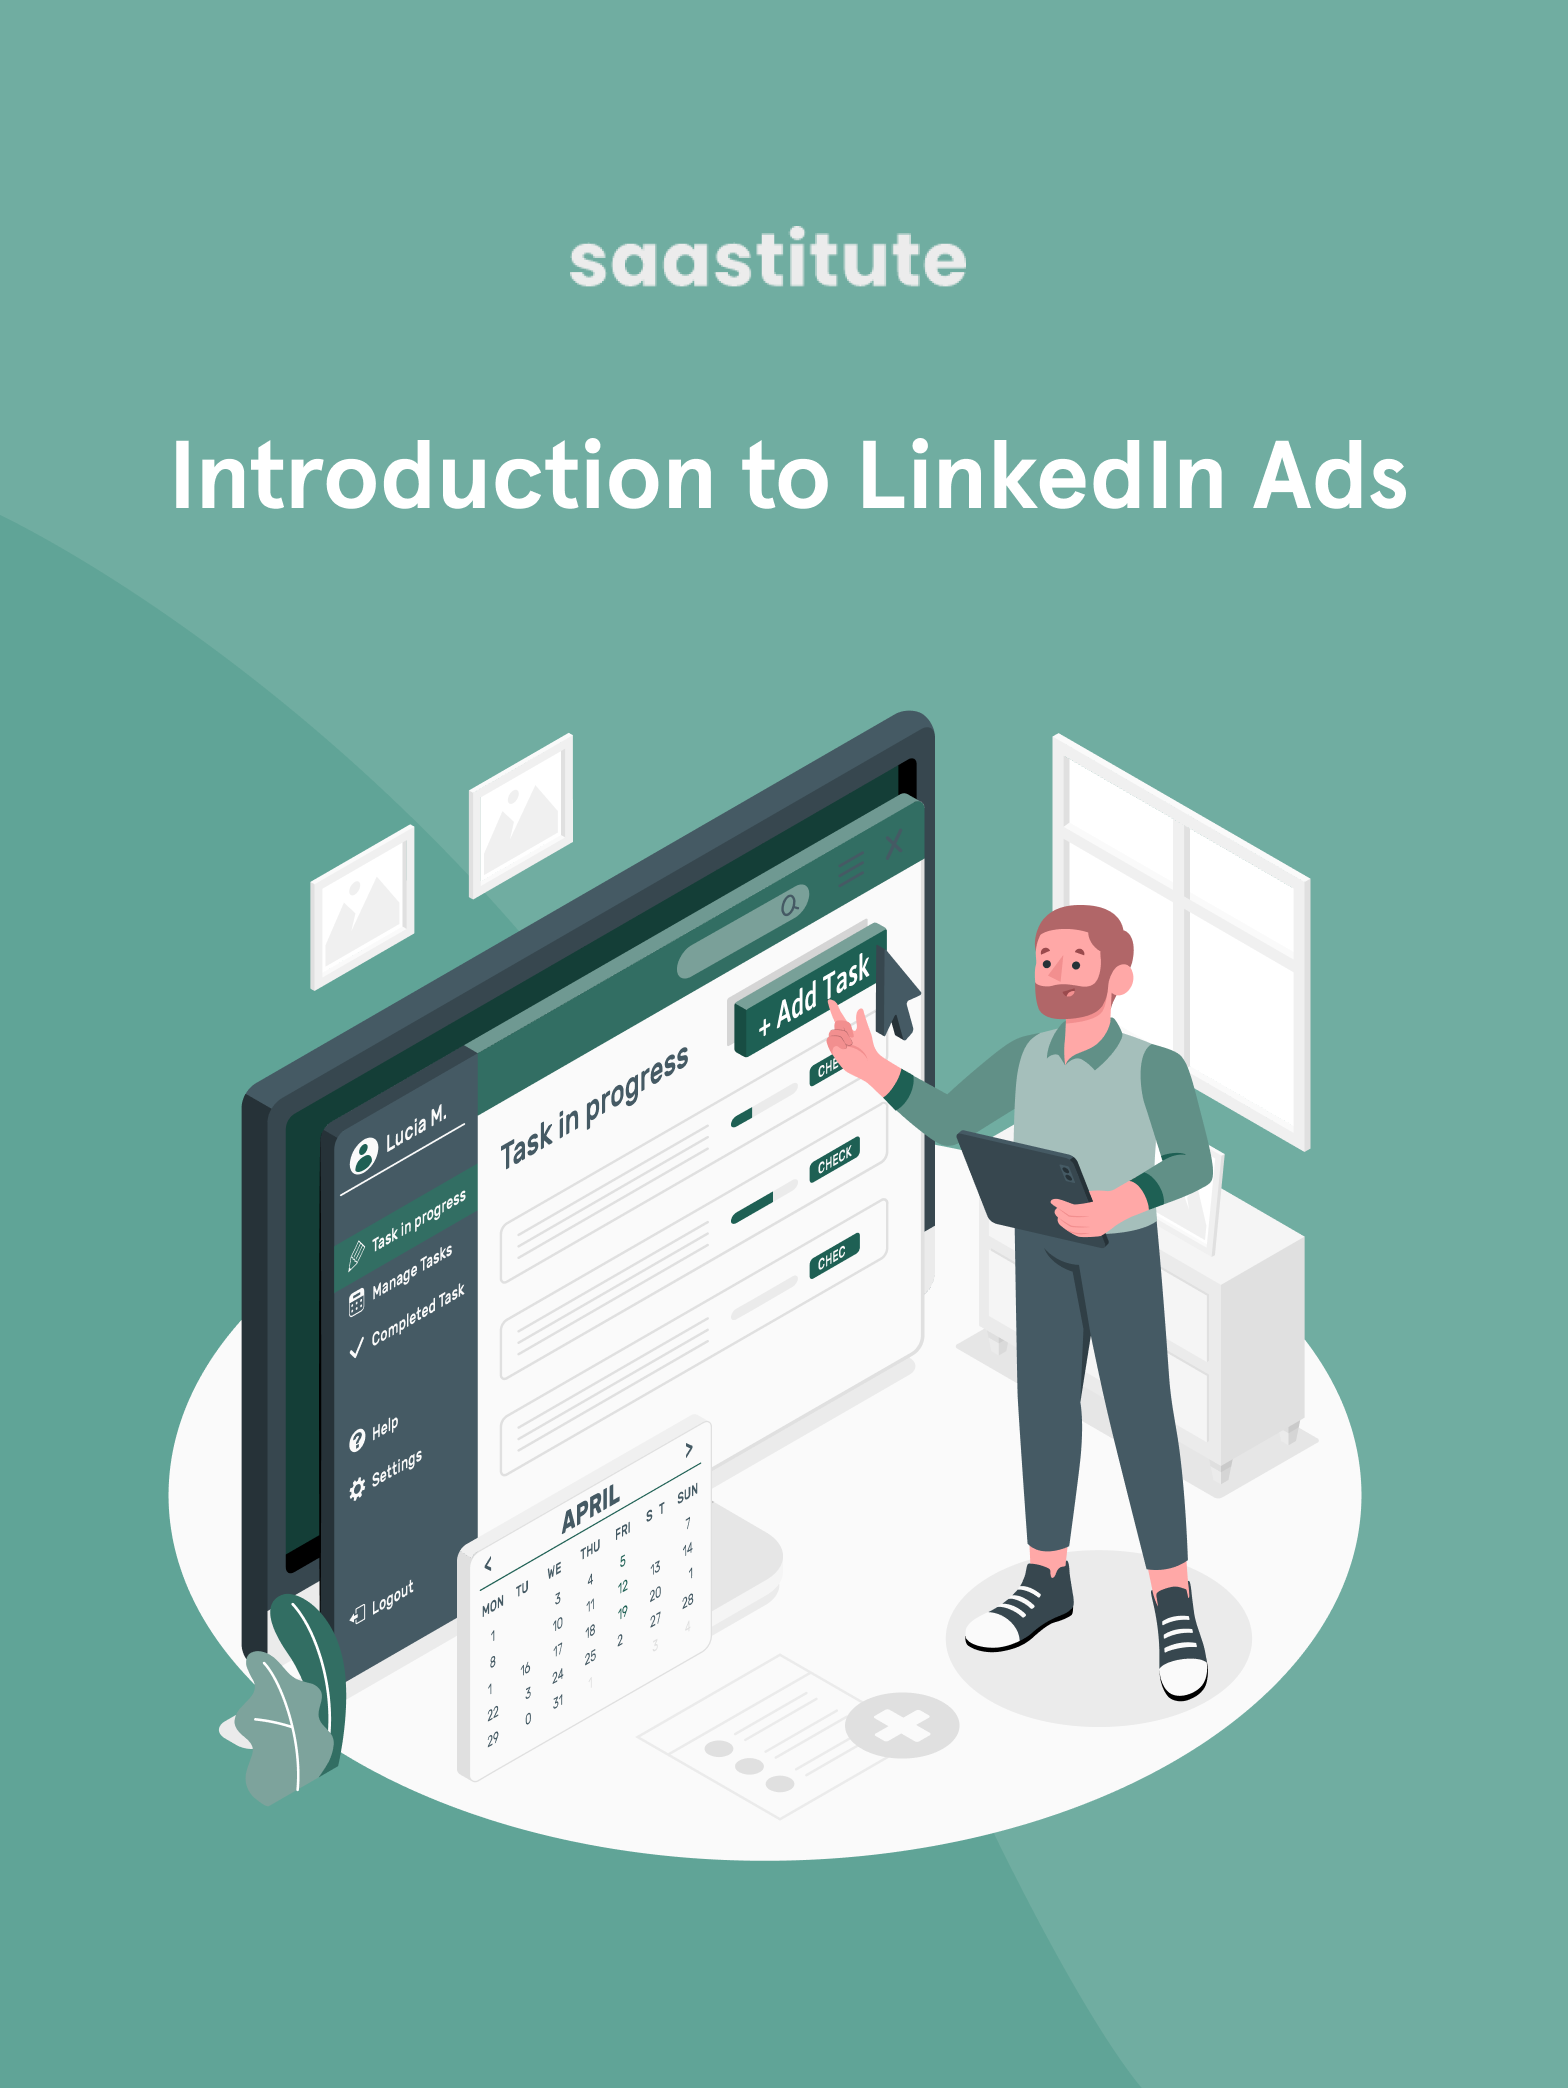 Introduction to LinkedIn Ads